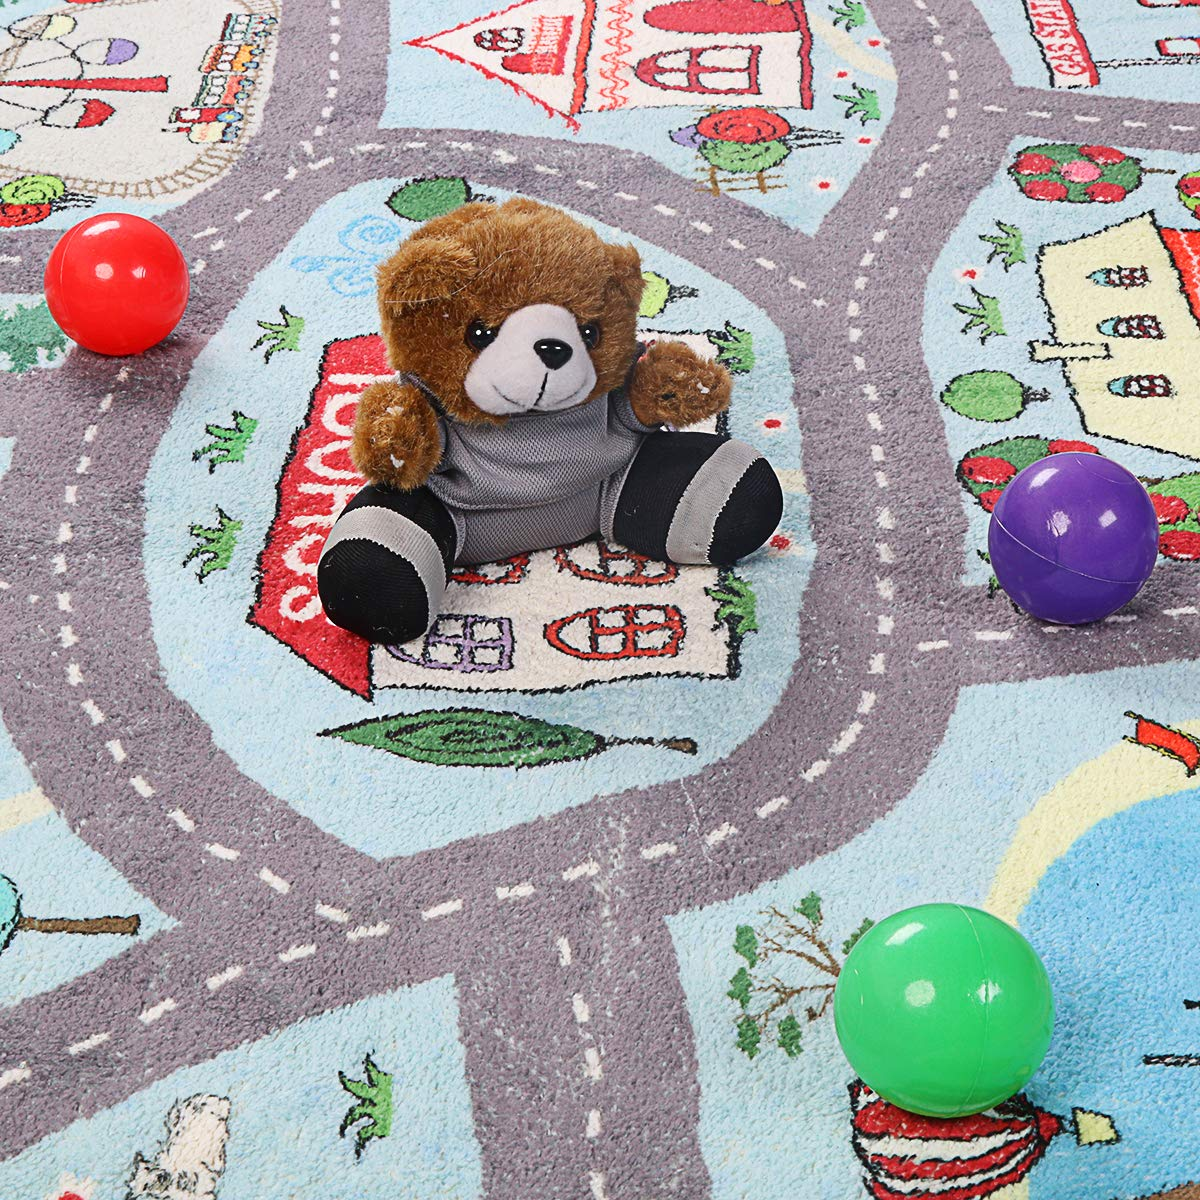 LIVEBOX Play Mat Faux Wool Kids Road Traffic Area Rugs 3 x 5 Non-Slip Childrens Crawling Carpet Colorful Educational /& Fun Throw Rug for Living Room Bedroom Playroom Nursery Decor Best Shower Gift